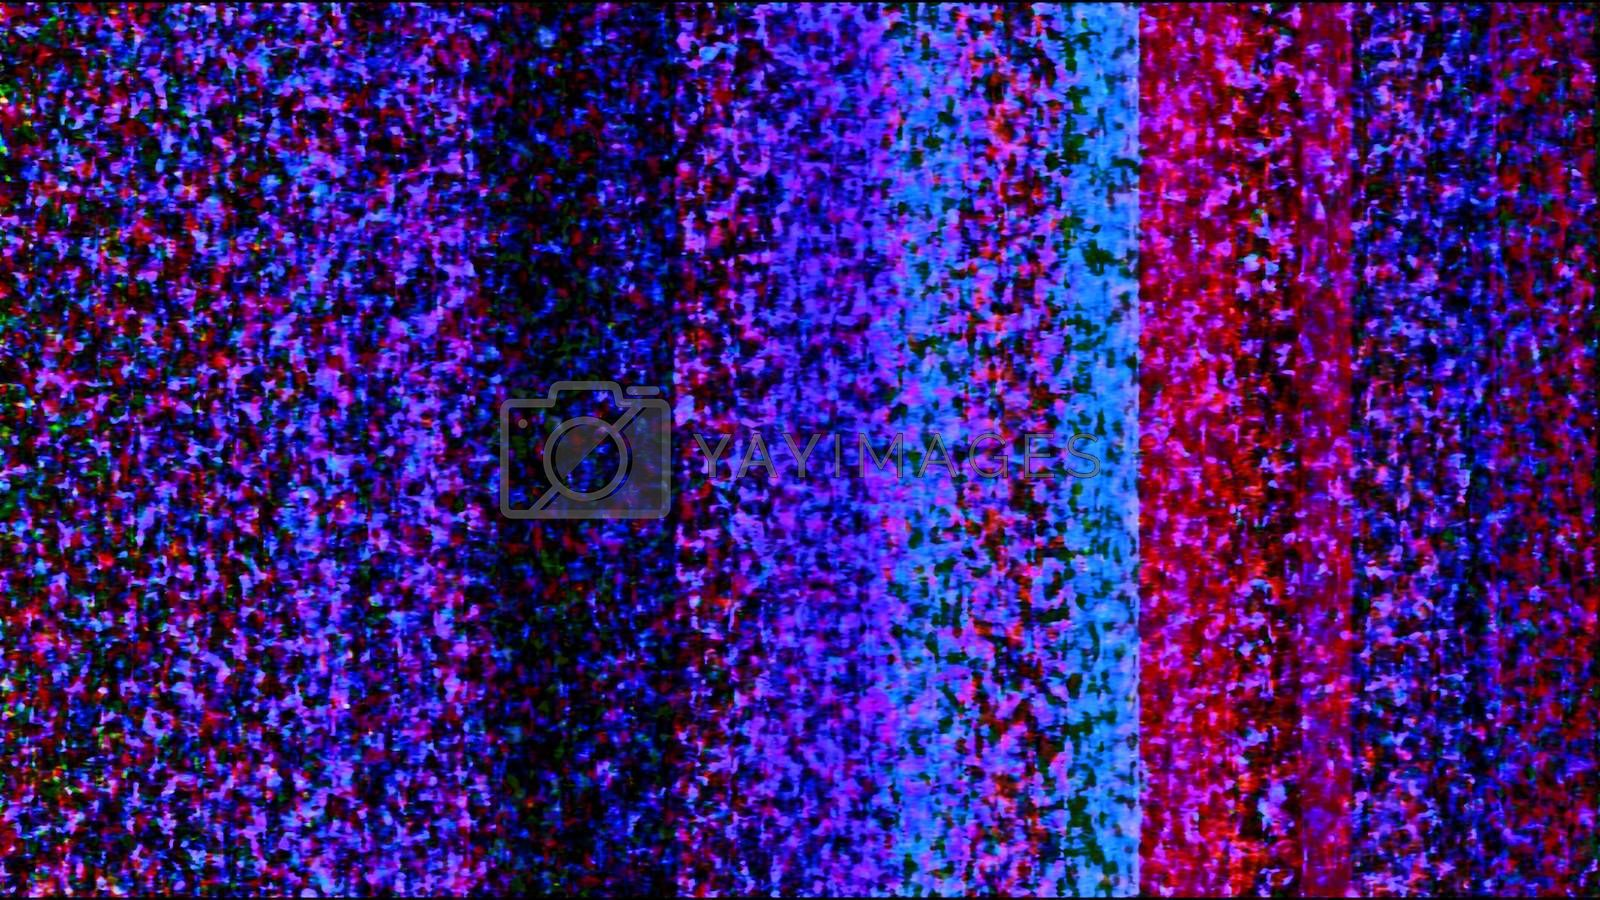 Future Tech 0287 - Futuristic technology abstract screen with colorful digital noise.